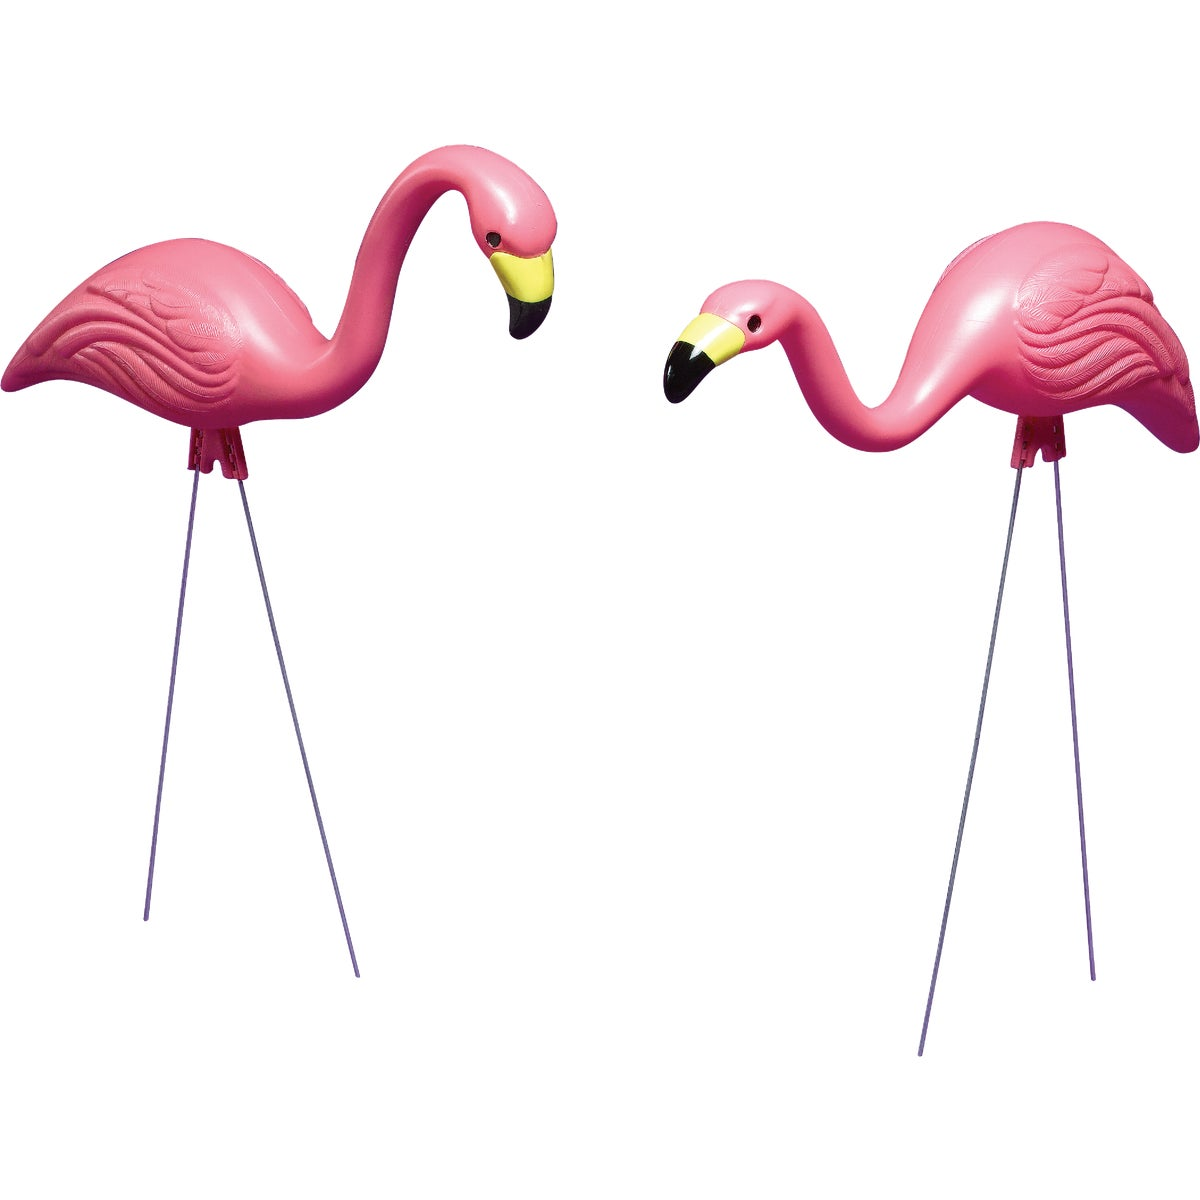 2PK PINK FLAMINGOS - G2 by Bloem Living